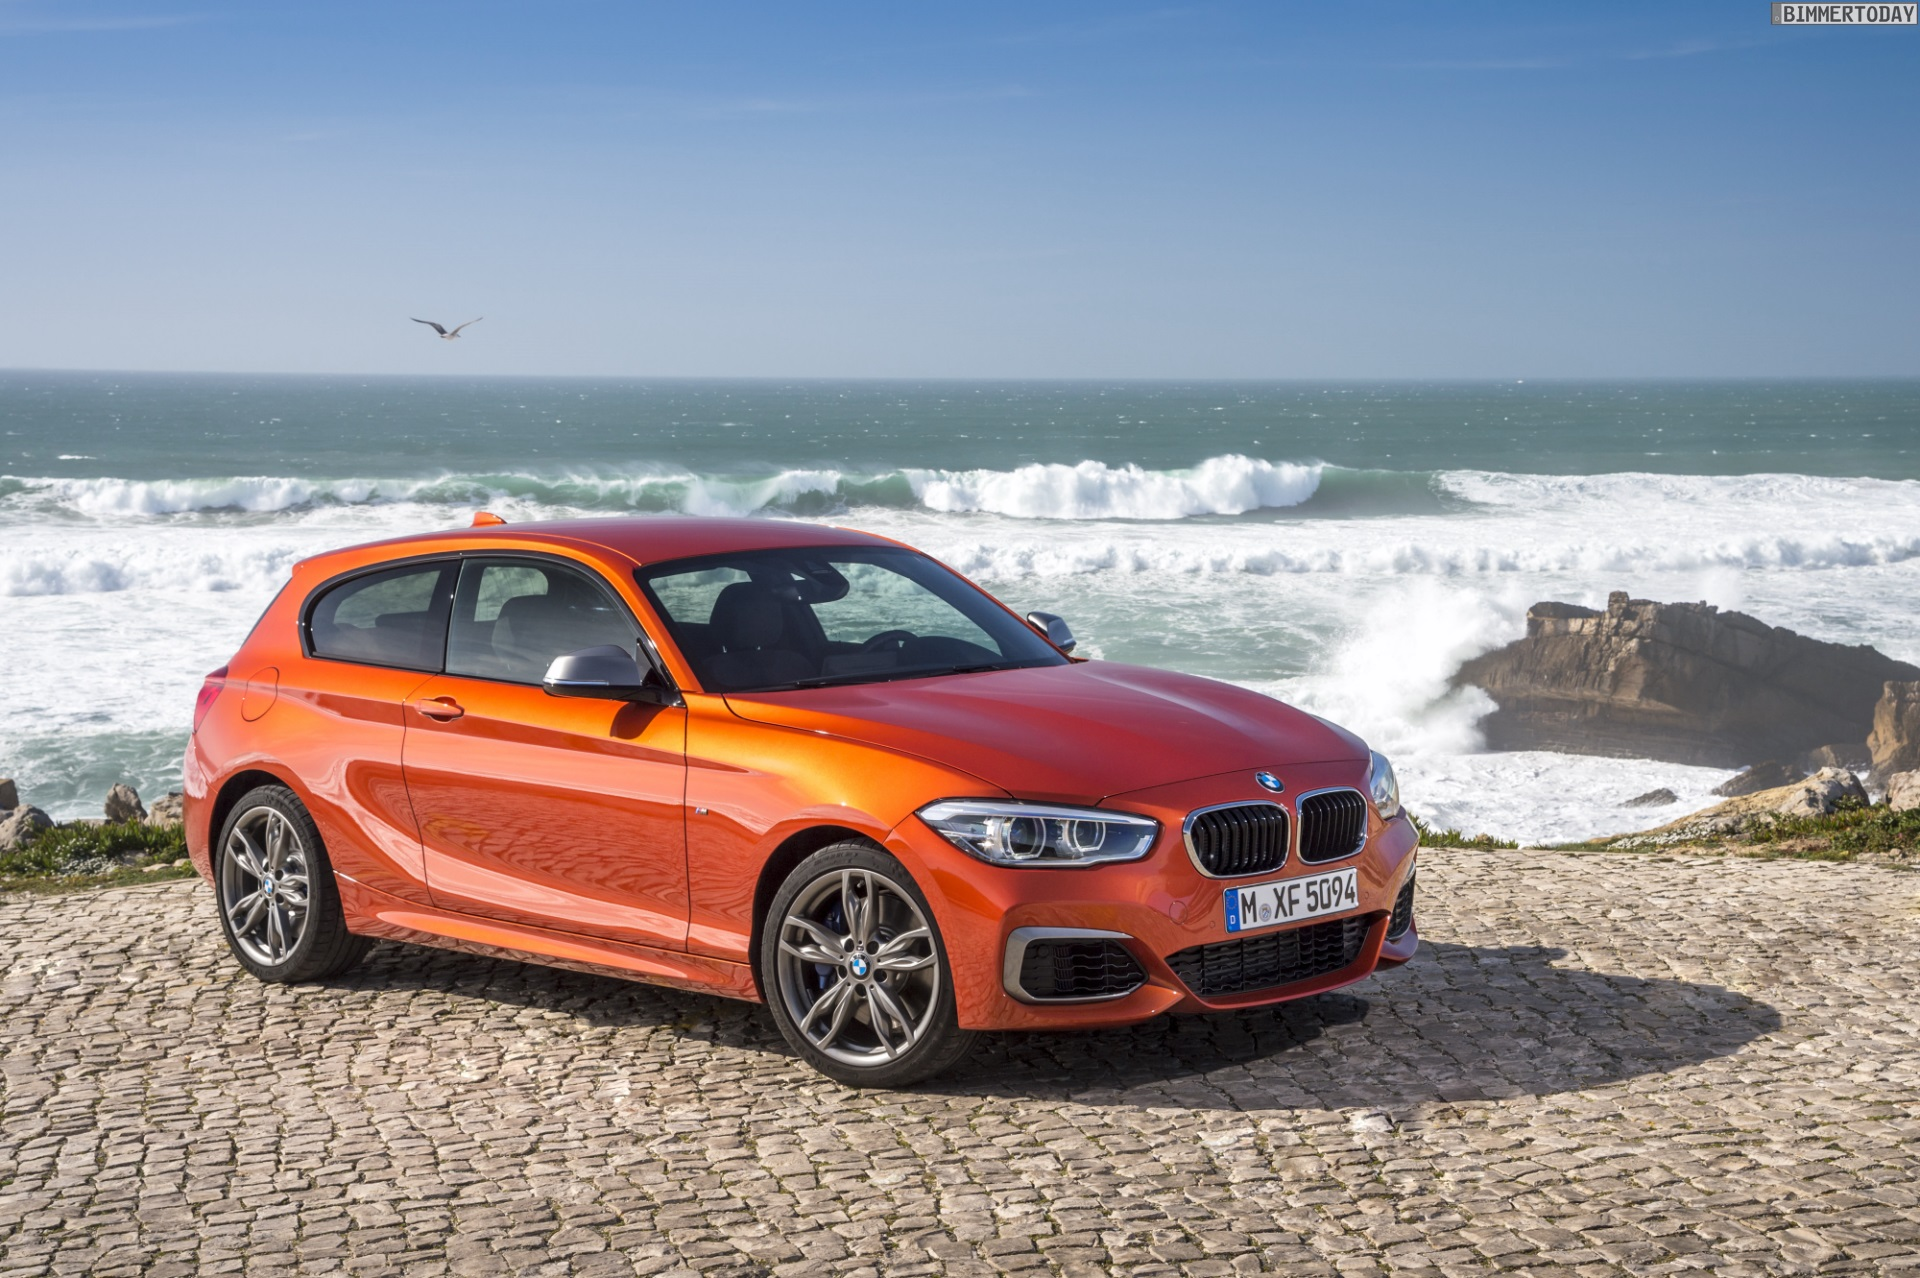 Bmw M135i Facelift 2015 Neue Fotos In Valencia Orange